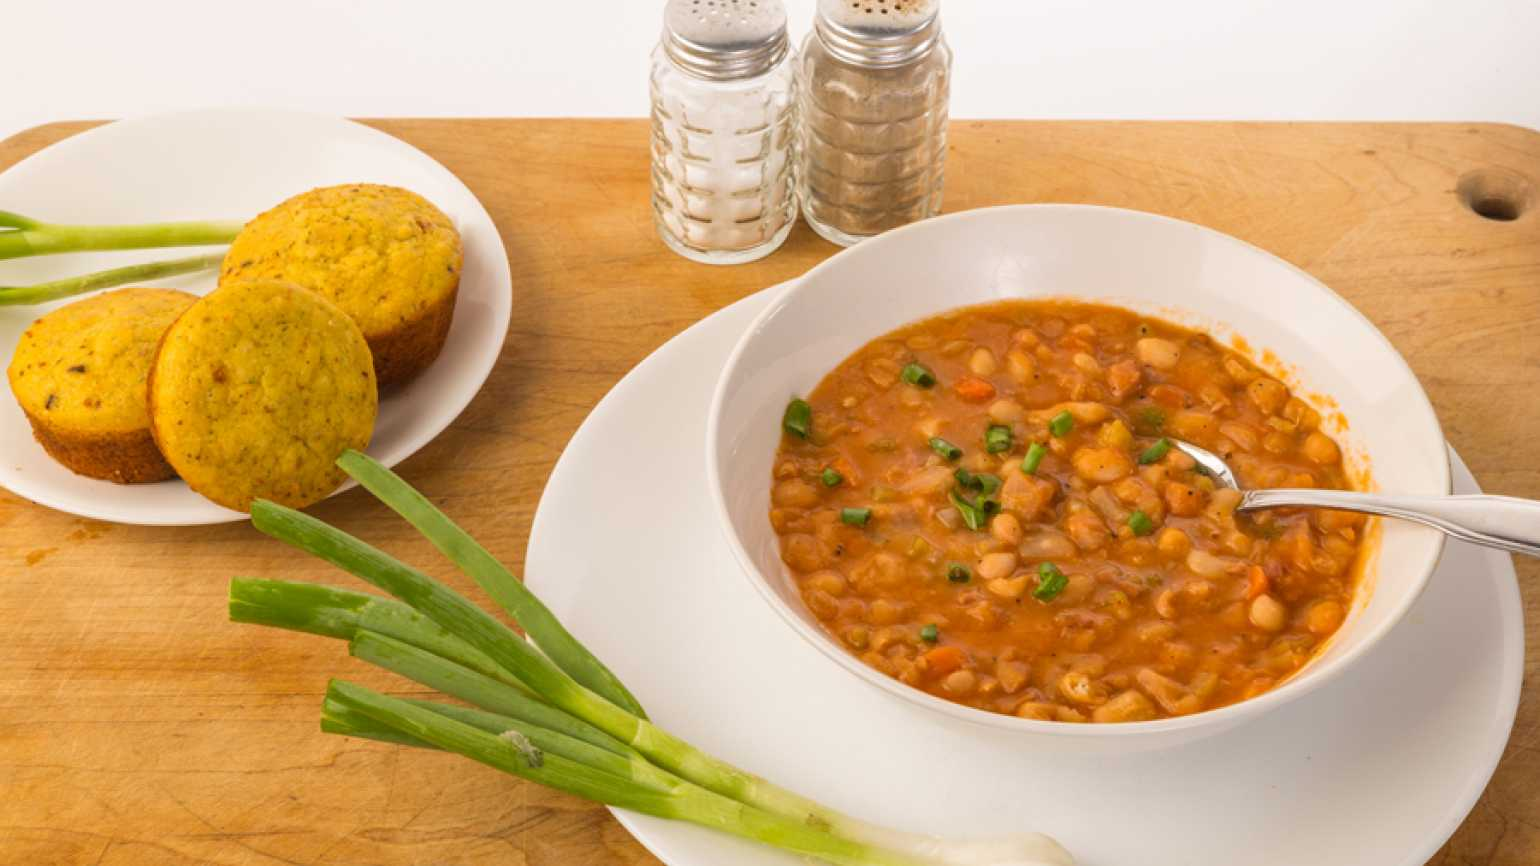 vegetable soup and cornbread healed her soul and sparked an idea to help others